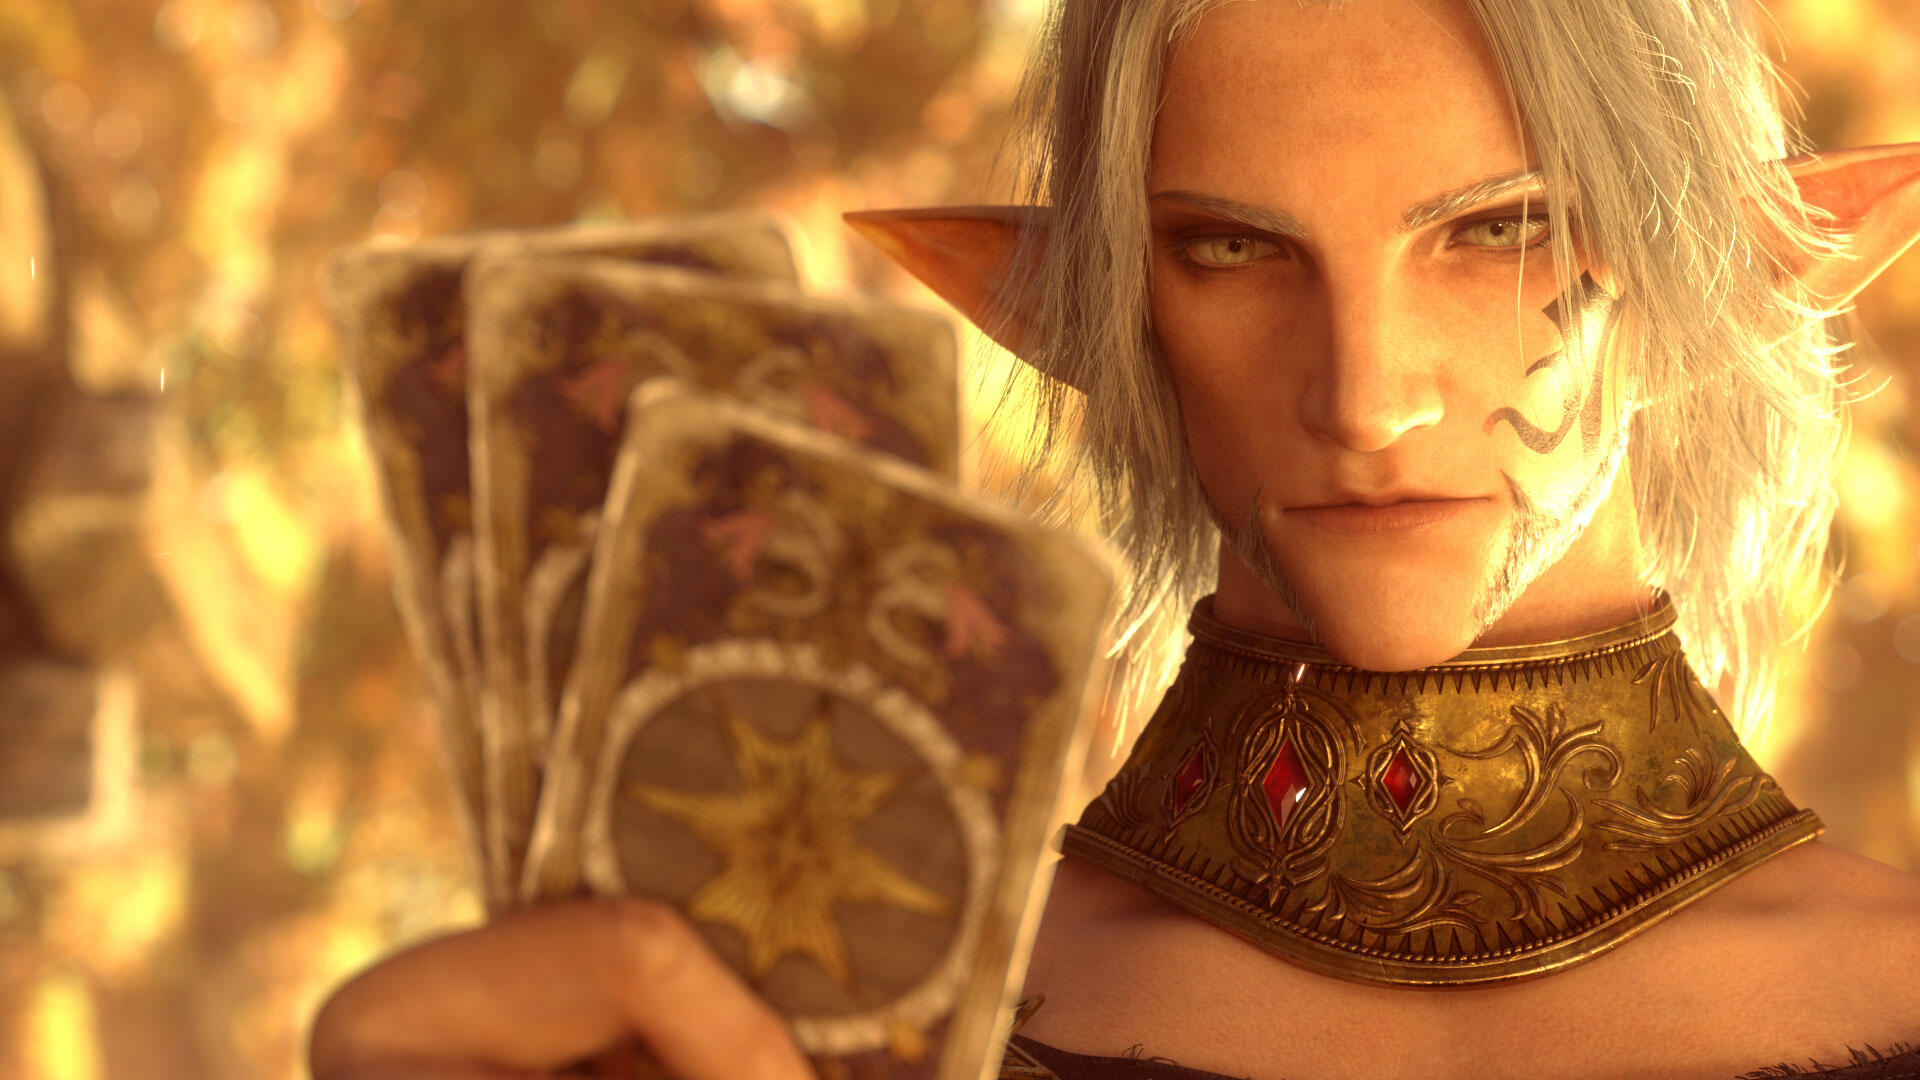 Final Fantasy 14: Shadowbringers Has a Healer Shortage Problem | USgamer